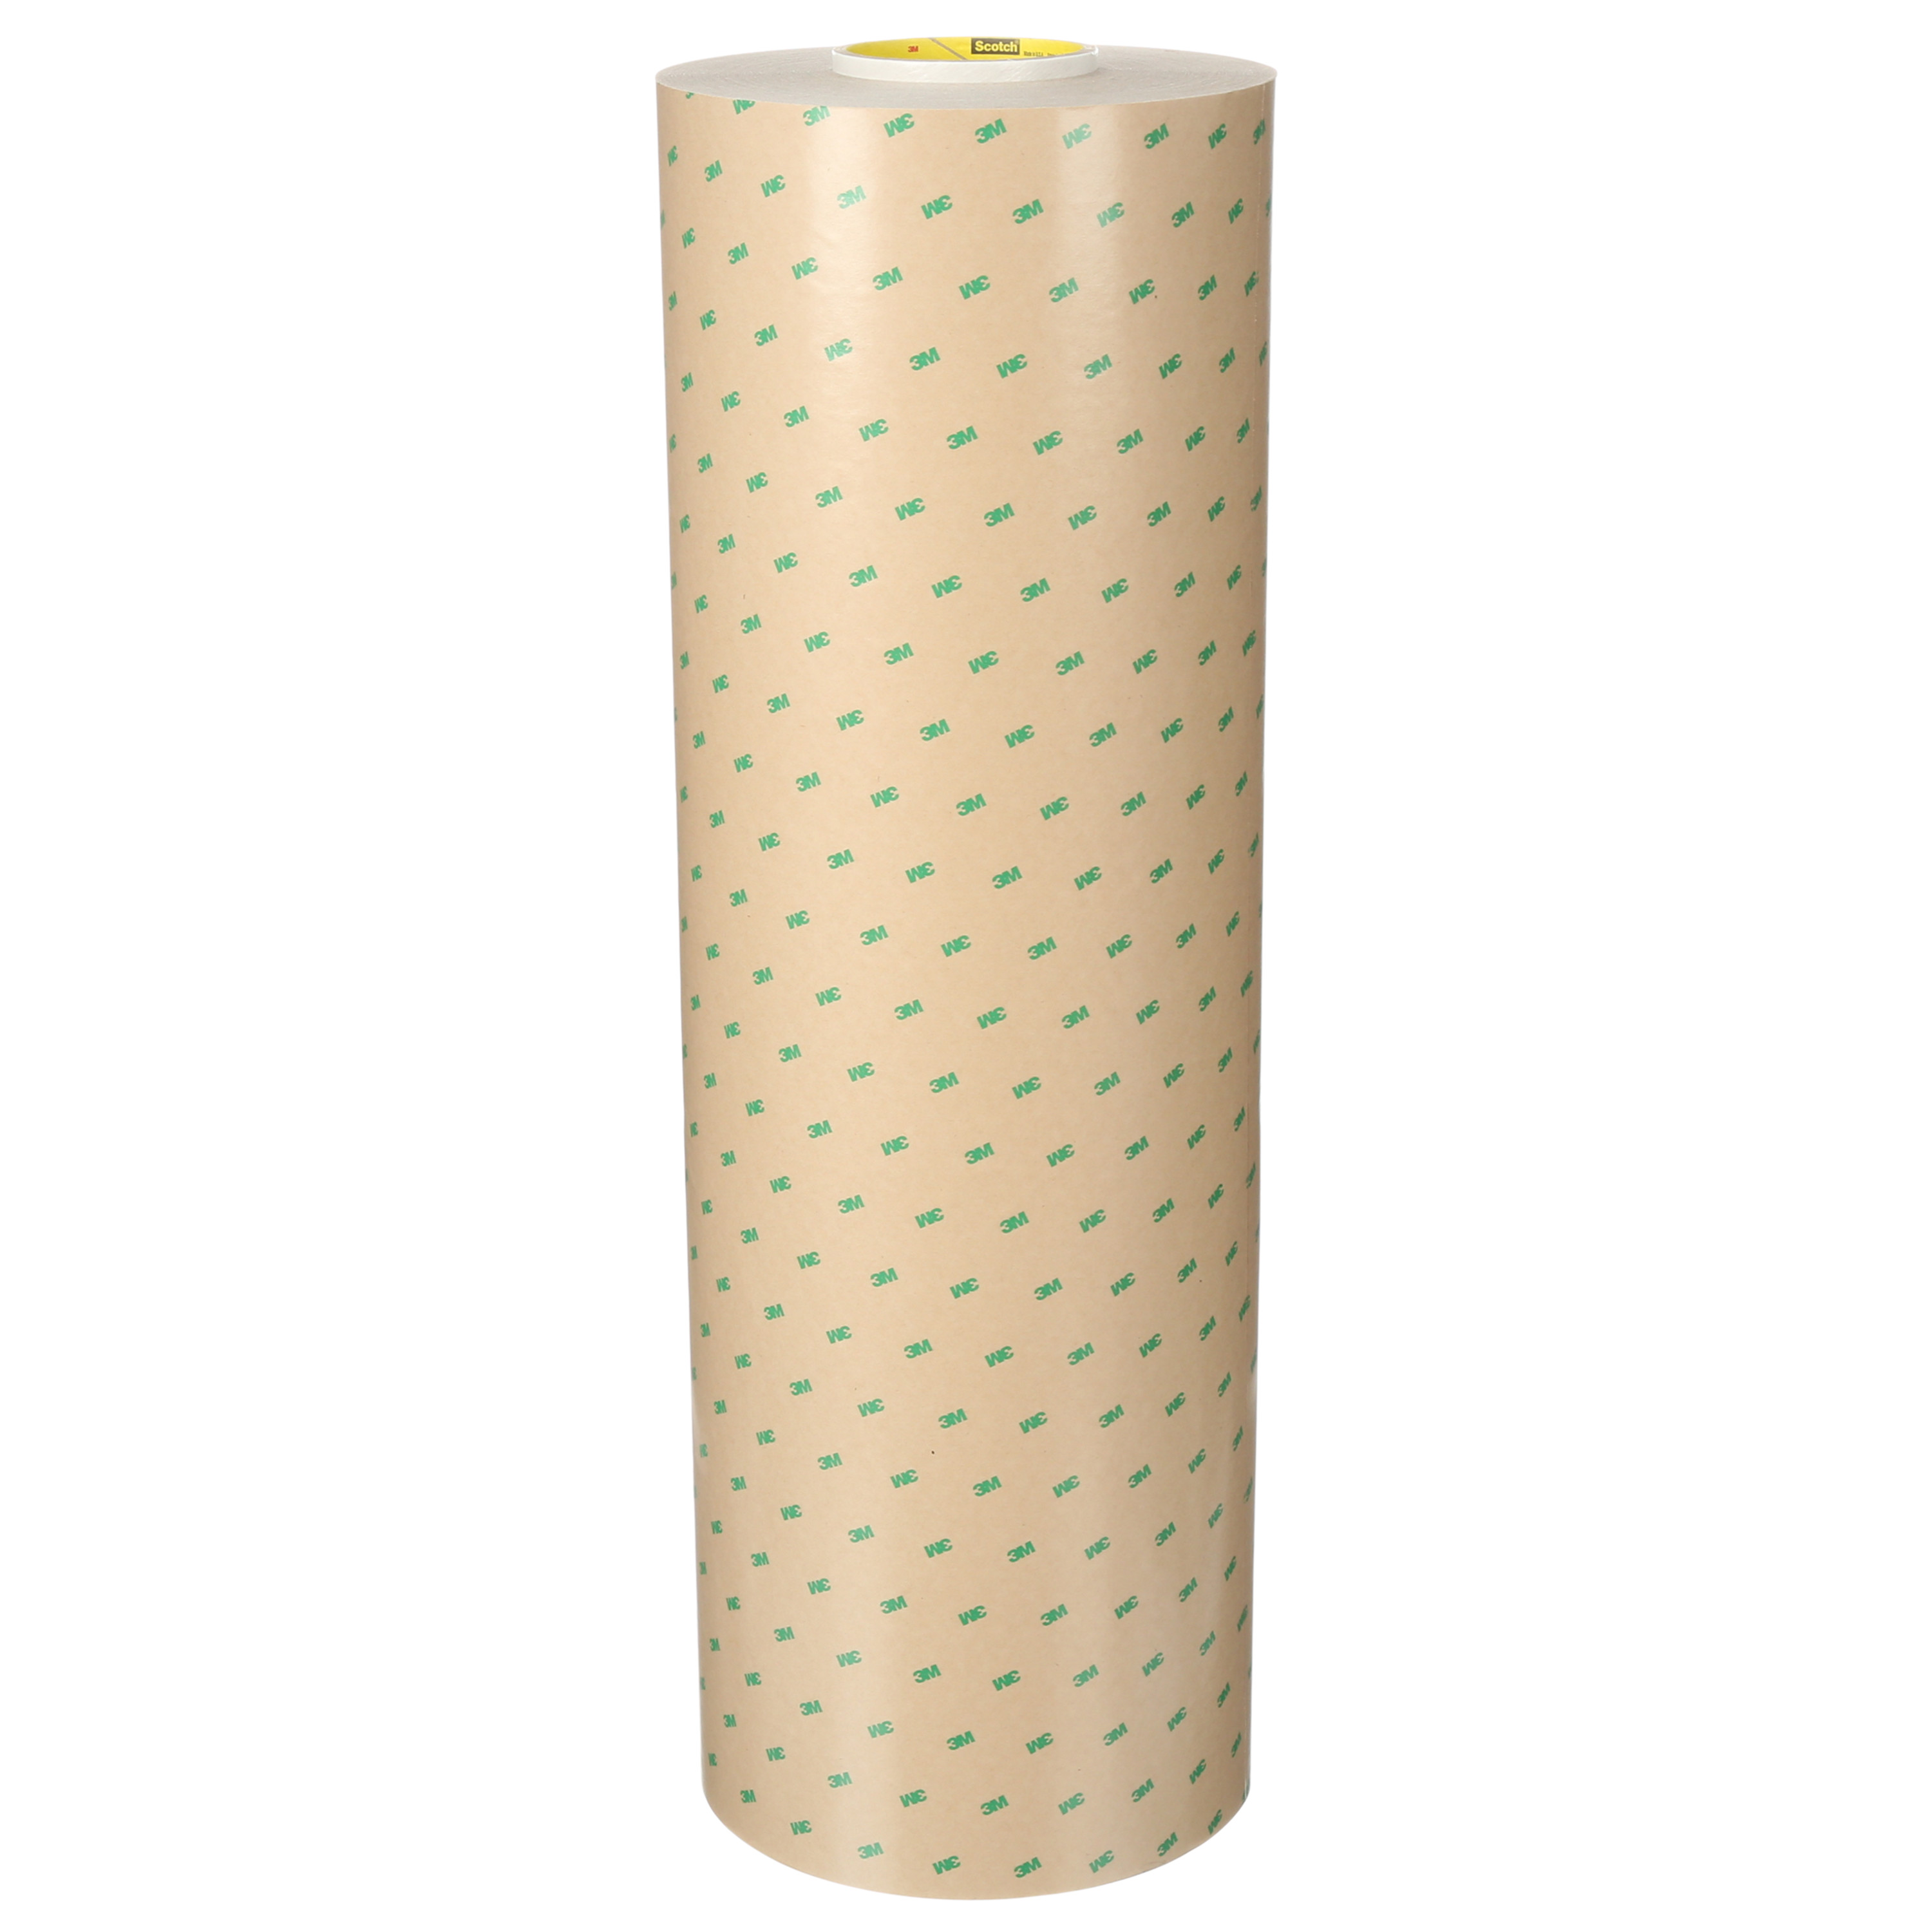 3M™ Adhesive Transfer Tape 9502, Clear, 48 in x 60 yd, 2 mil, 1 roll per case